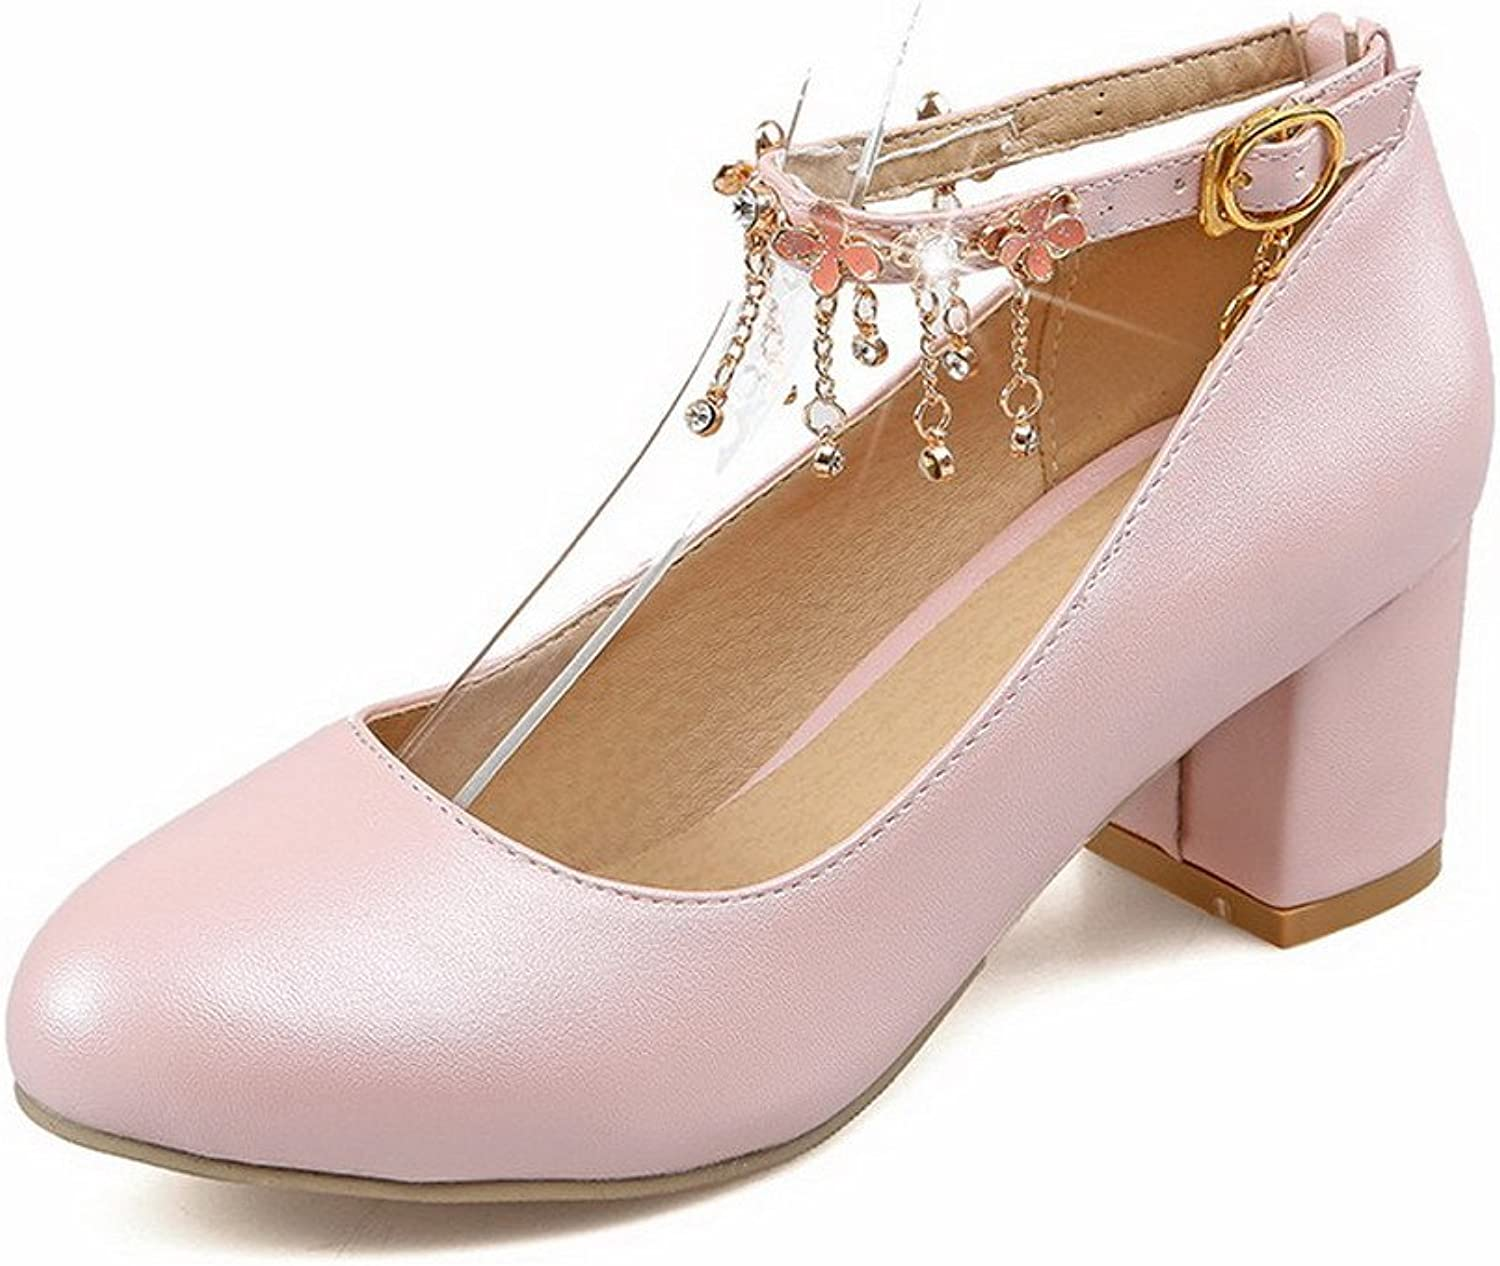 AmoonyFashion Women's Buckle PU Solid Round Closed Toe Pumps-shoes,BUSDT003298